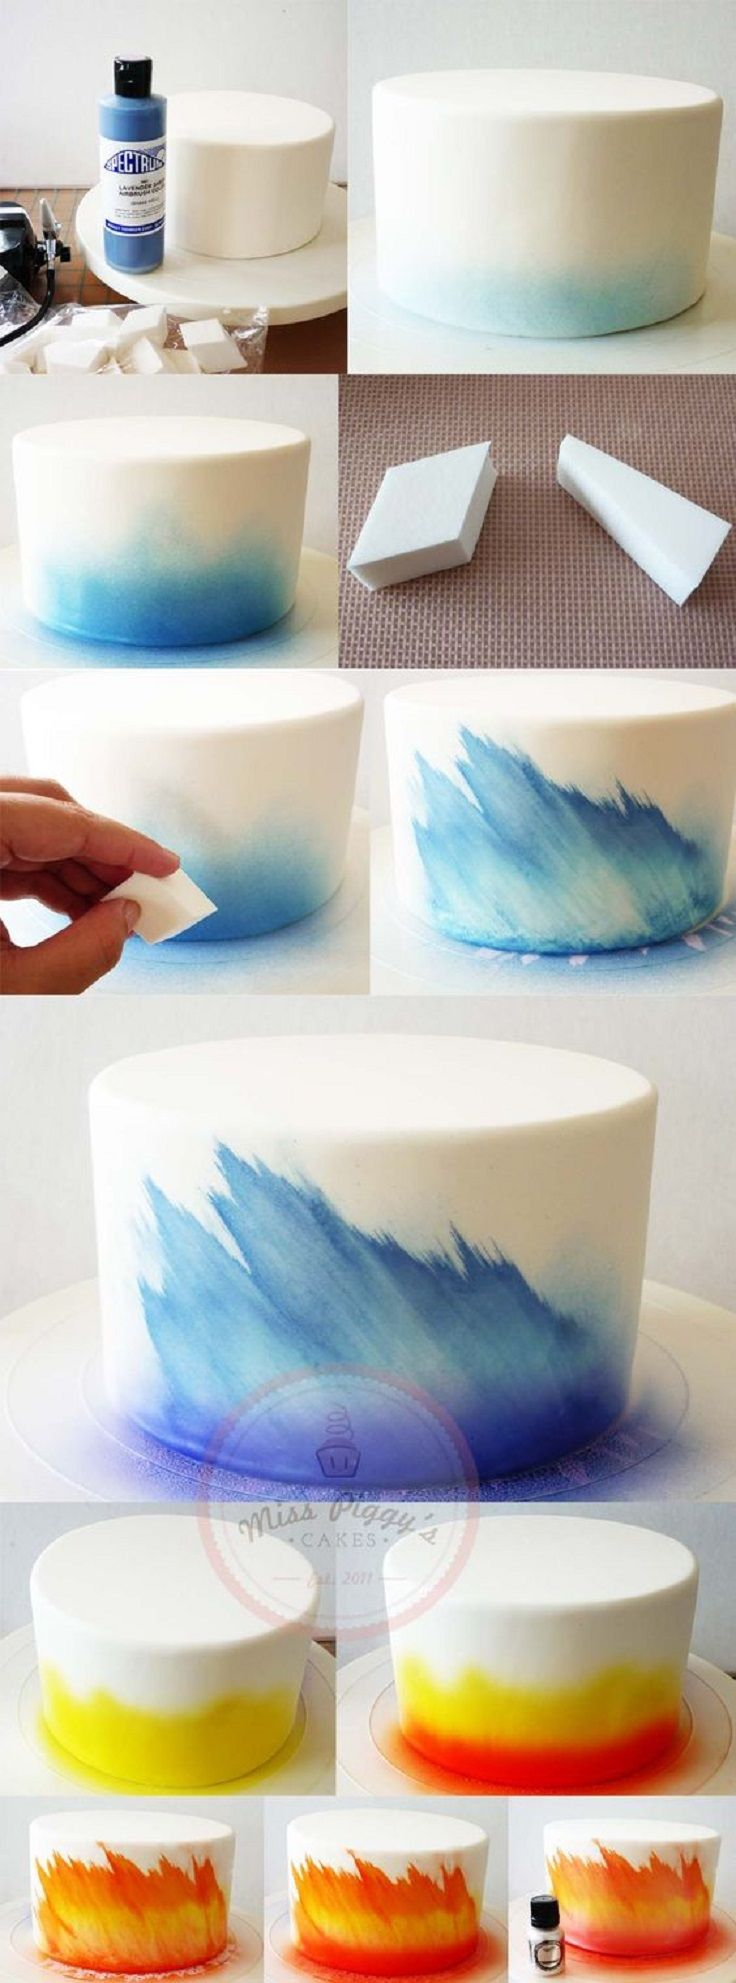 Photo of 17 Amazing Cake Decorating Ideas, Tips and Tricks That'll Make You A Pro